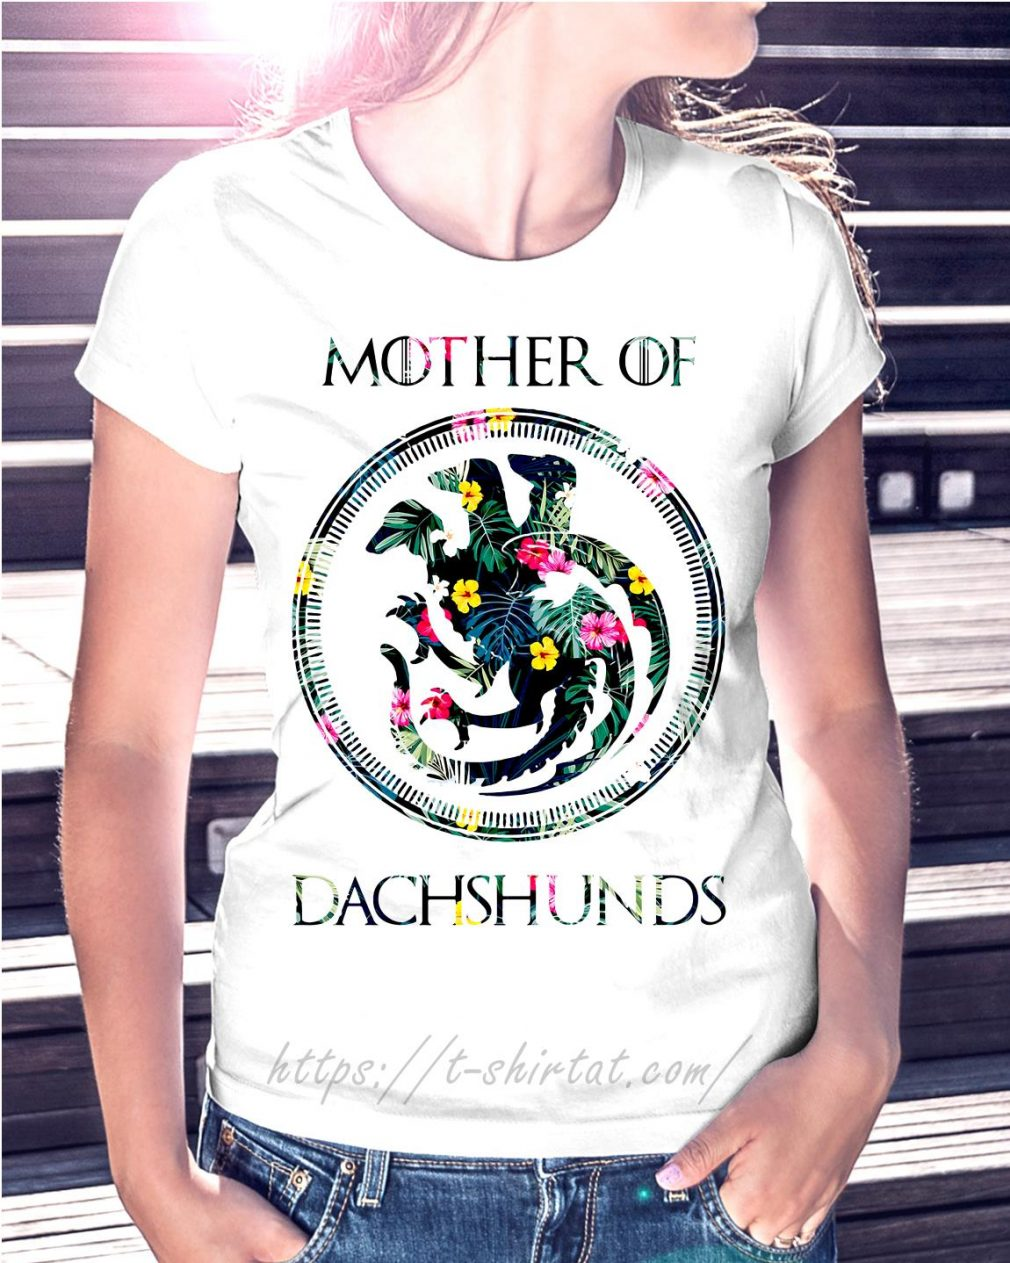 Game of Thrones mother of Dachshunds green flower